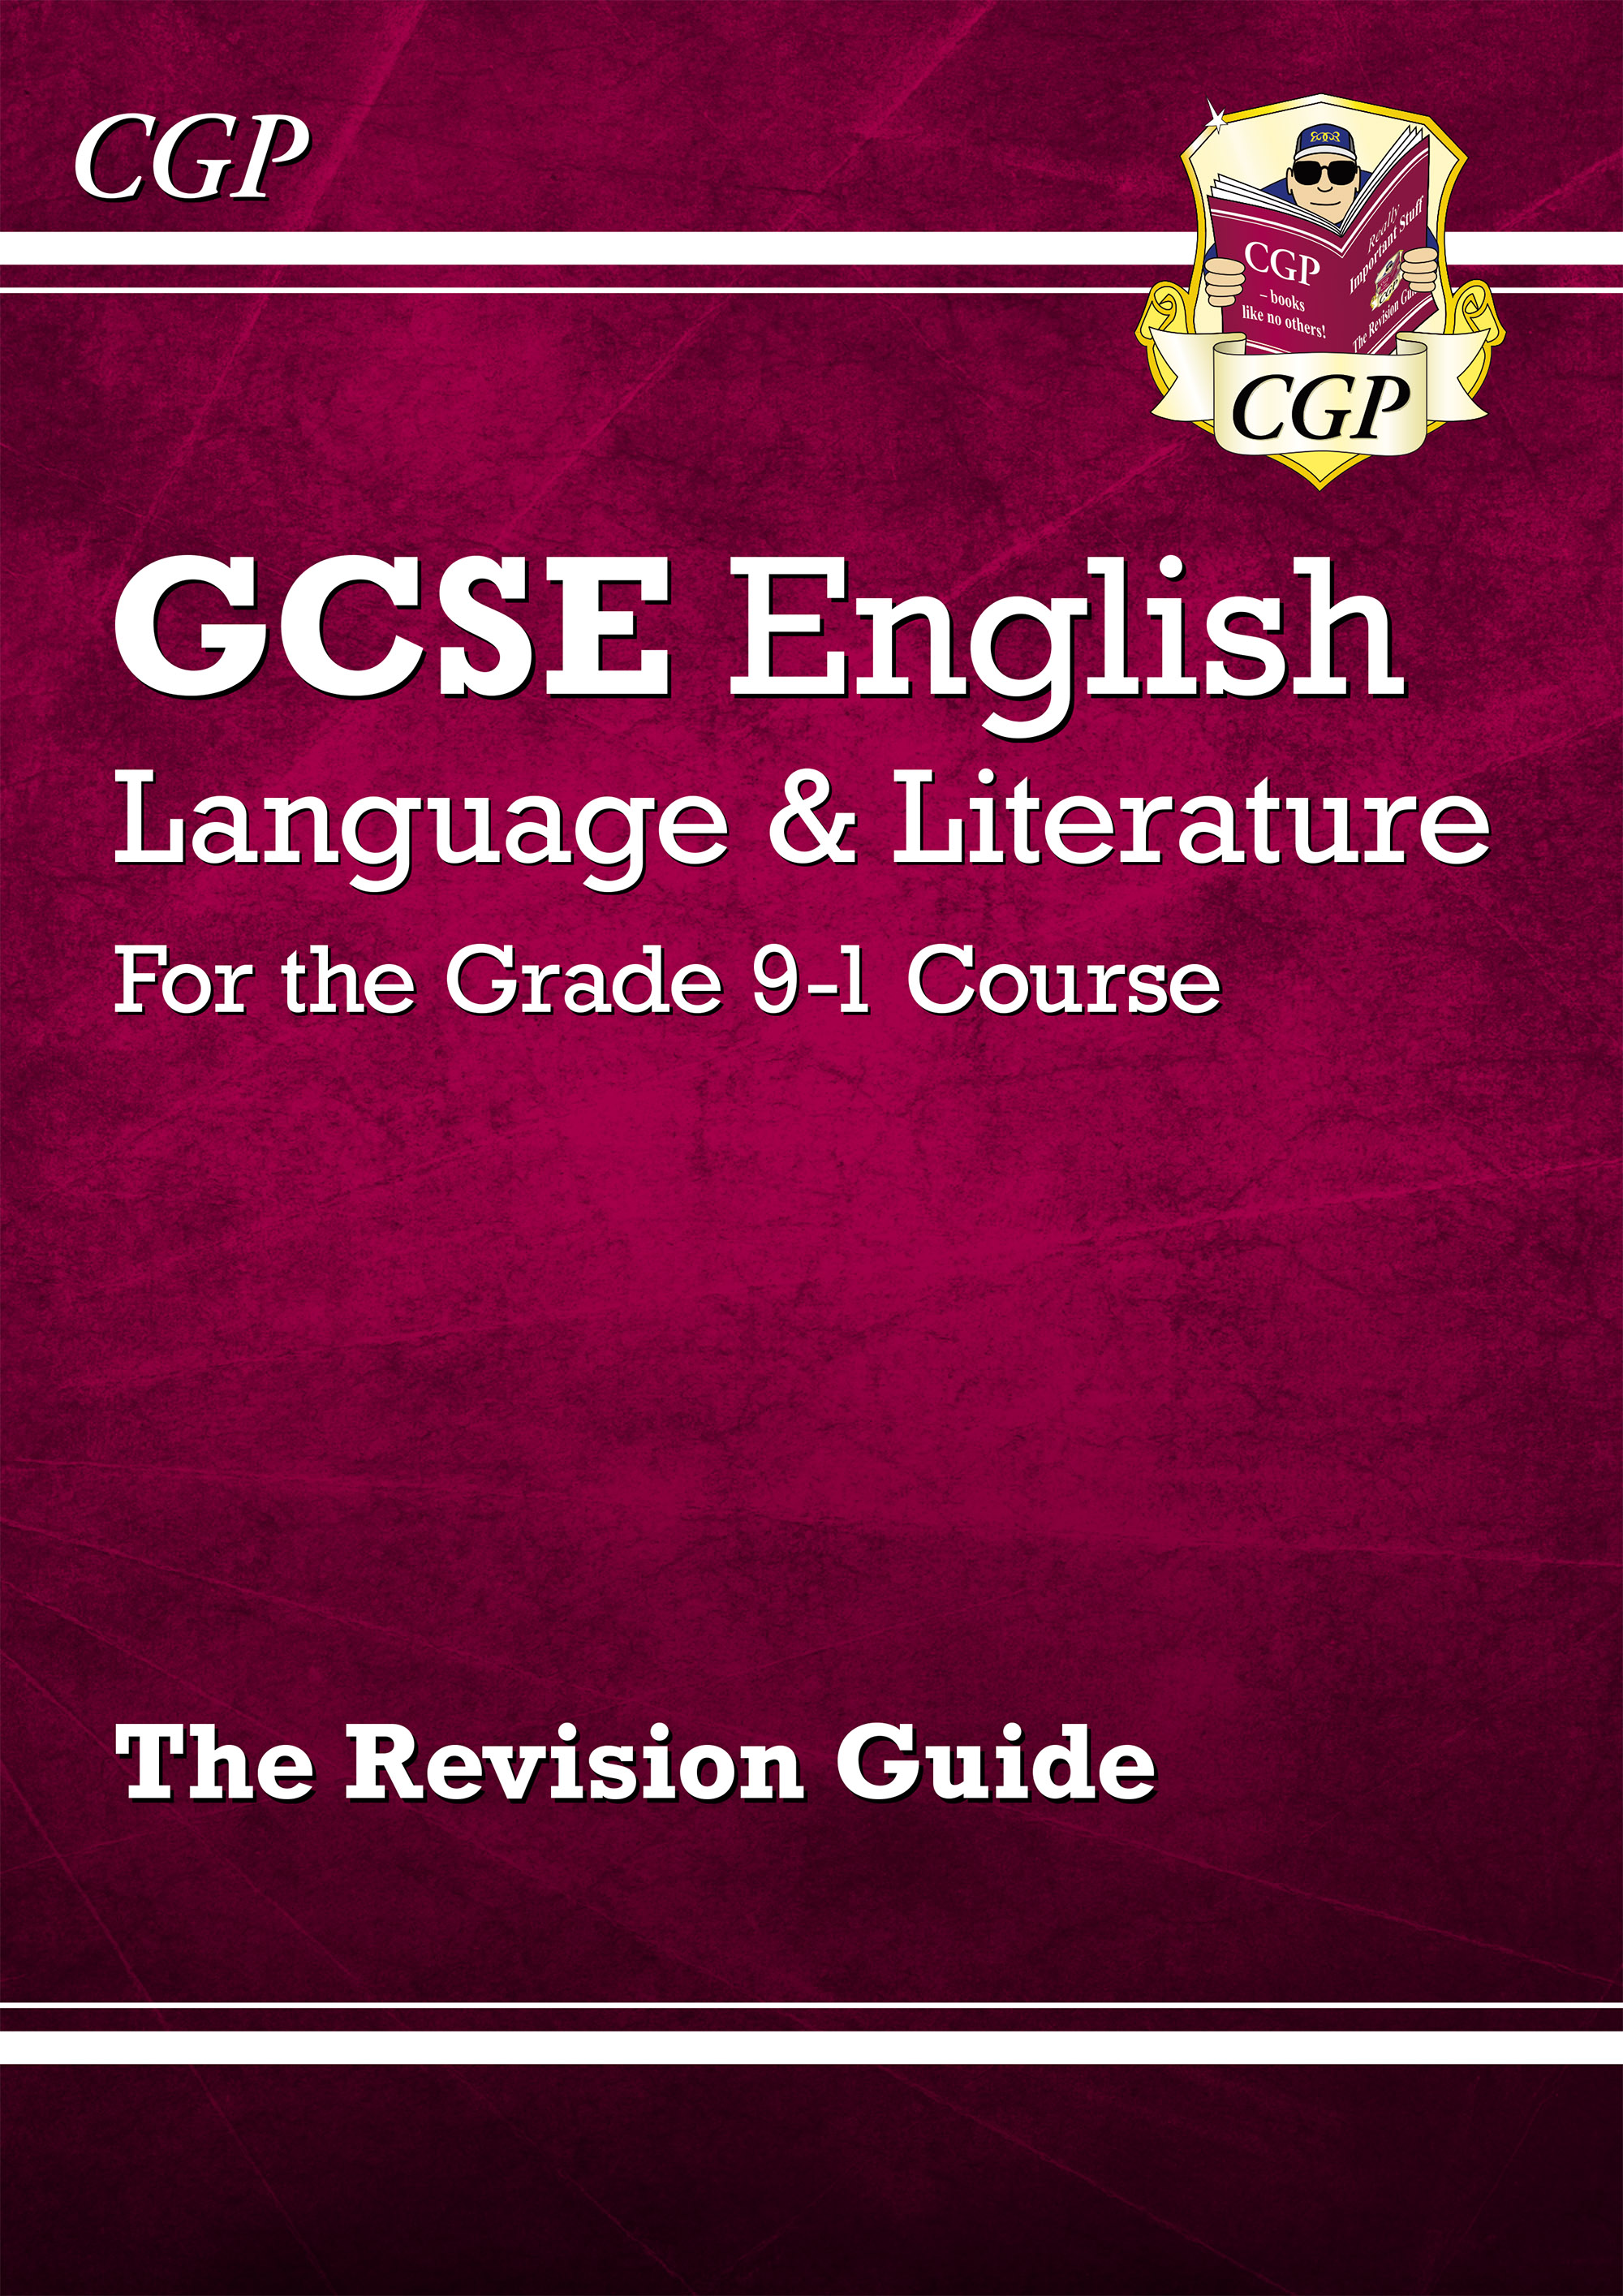 EHR41DK - GCSE English Language and Literature Revision Guide - for the Grade 9-1 Courses